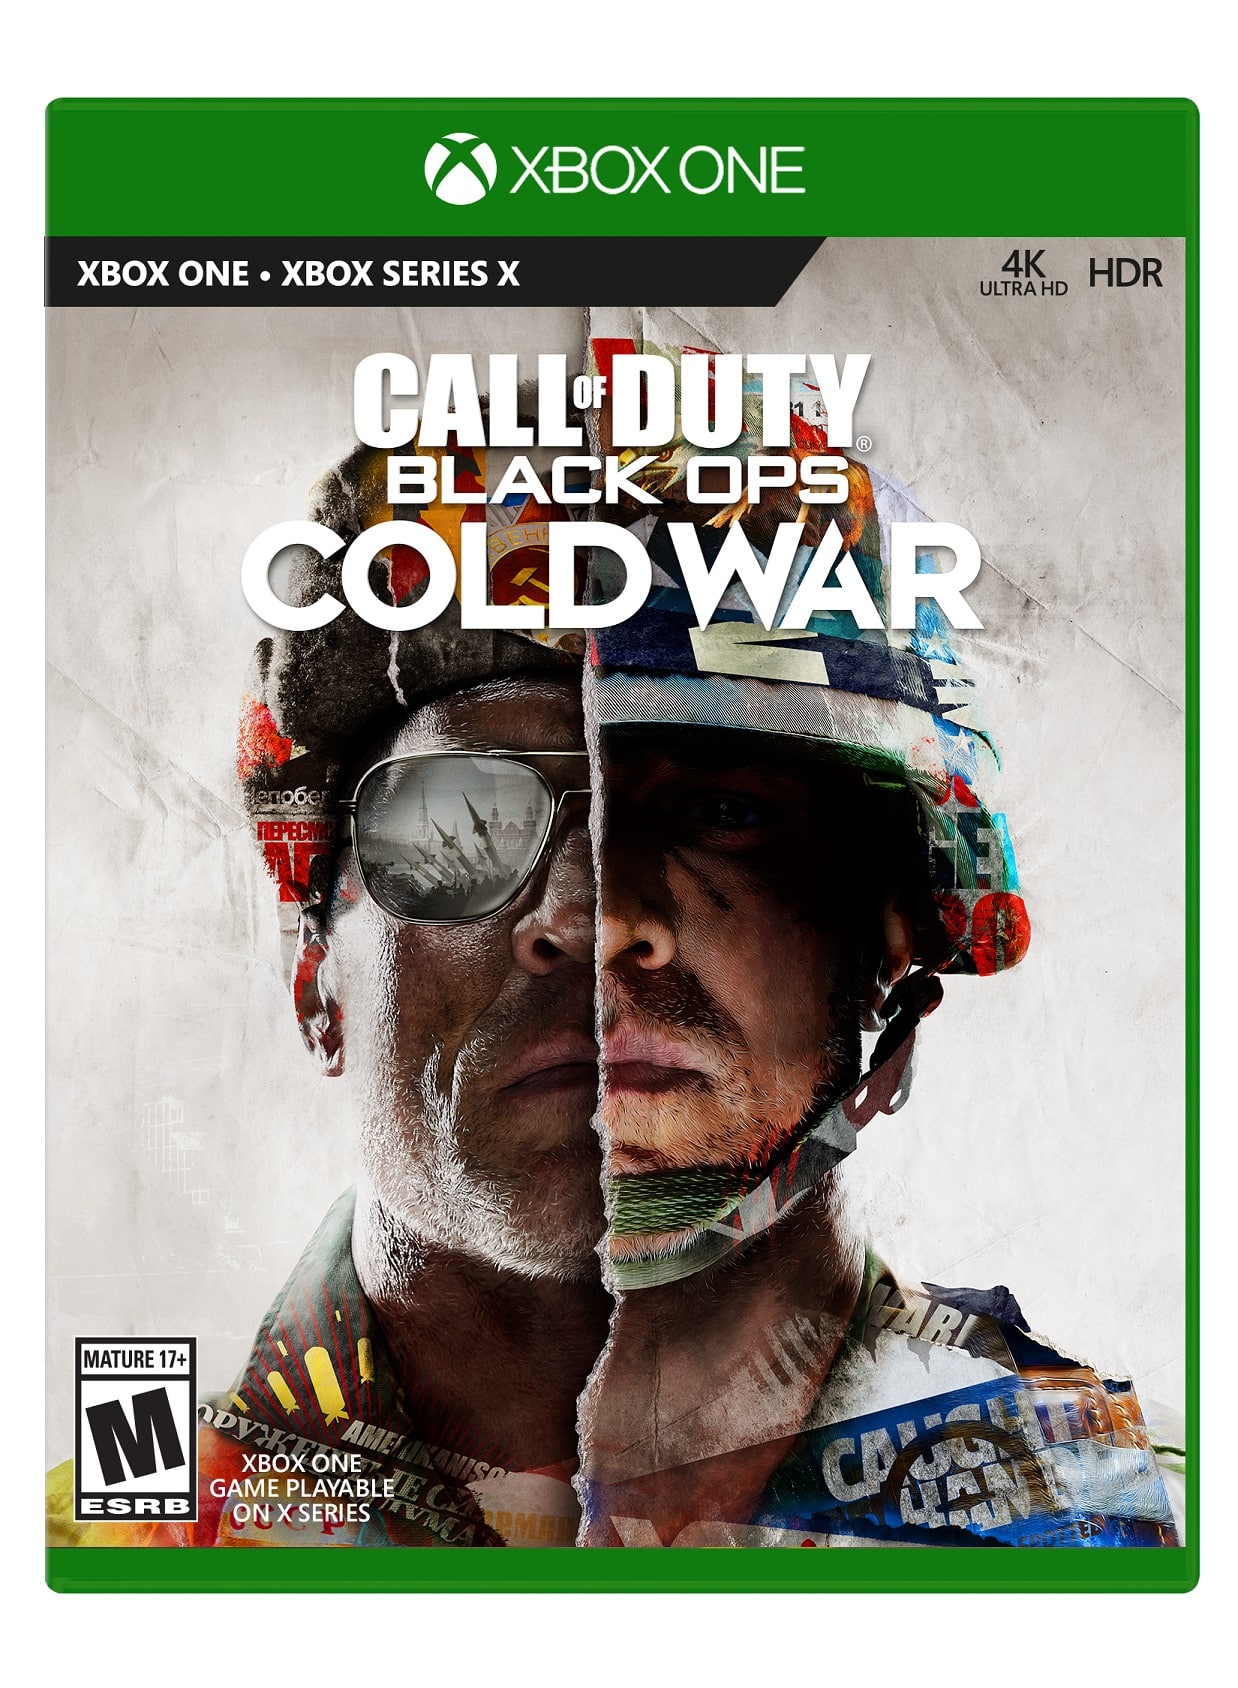 Call of Duty: Black Ops Cold War Xbox One Physical Copy - $39.99